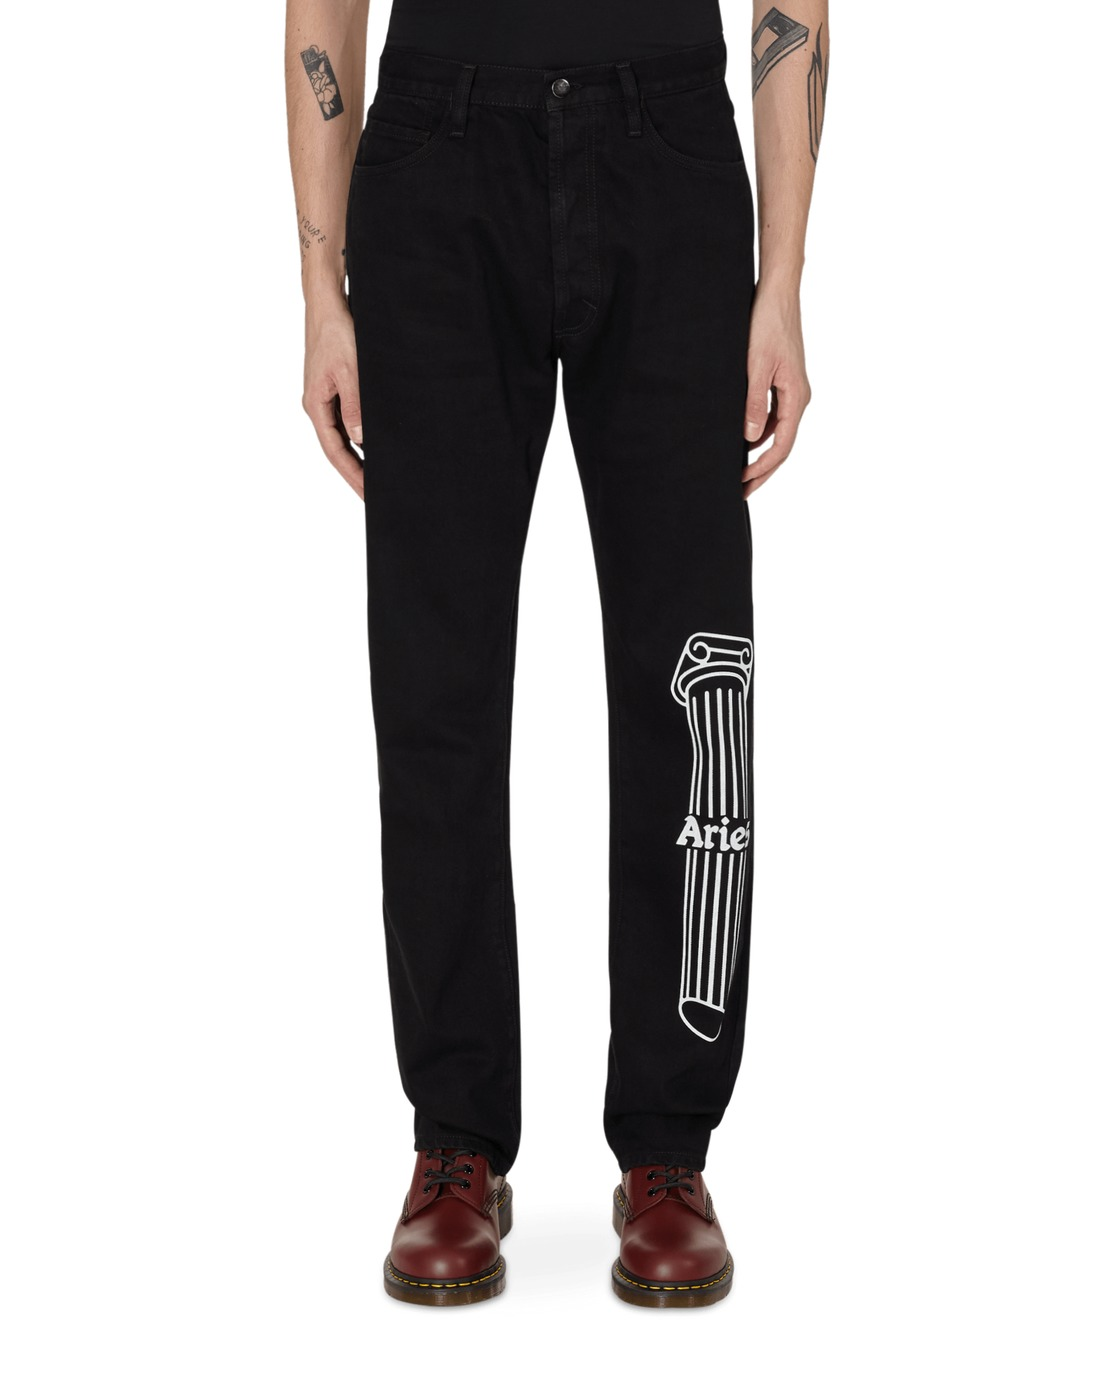 Aries Column Lilly Jeans Black